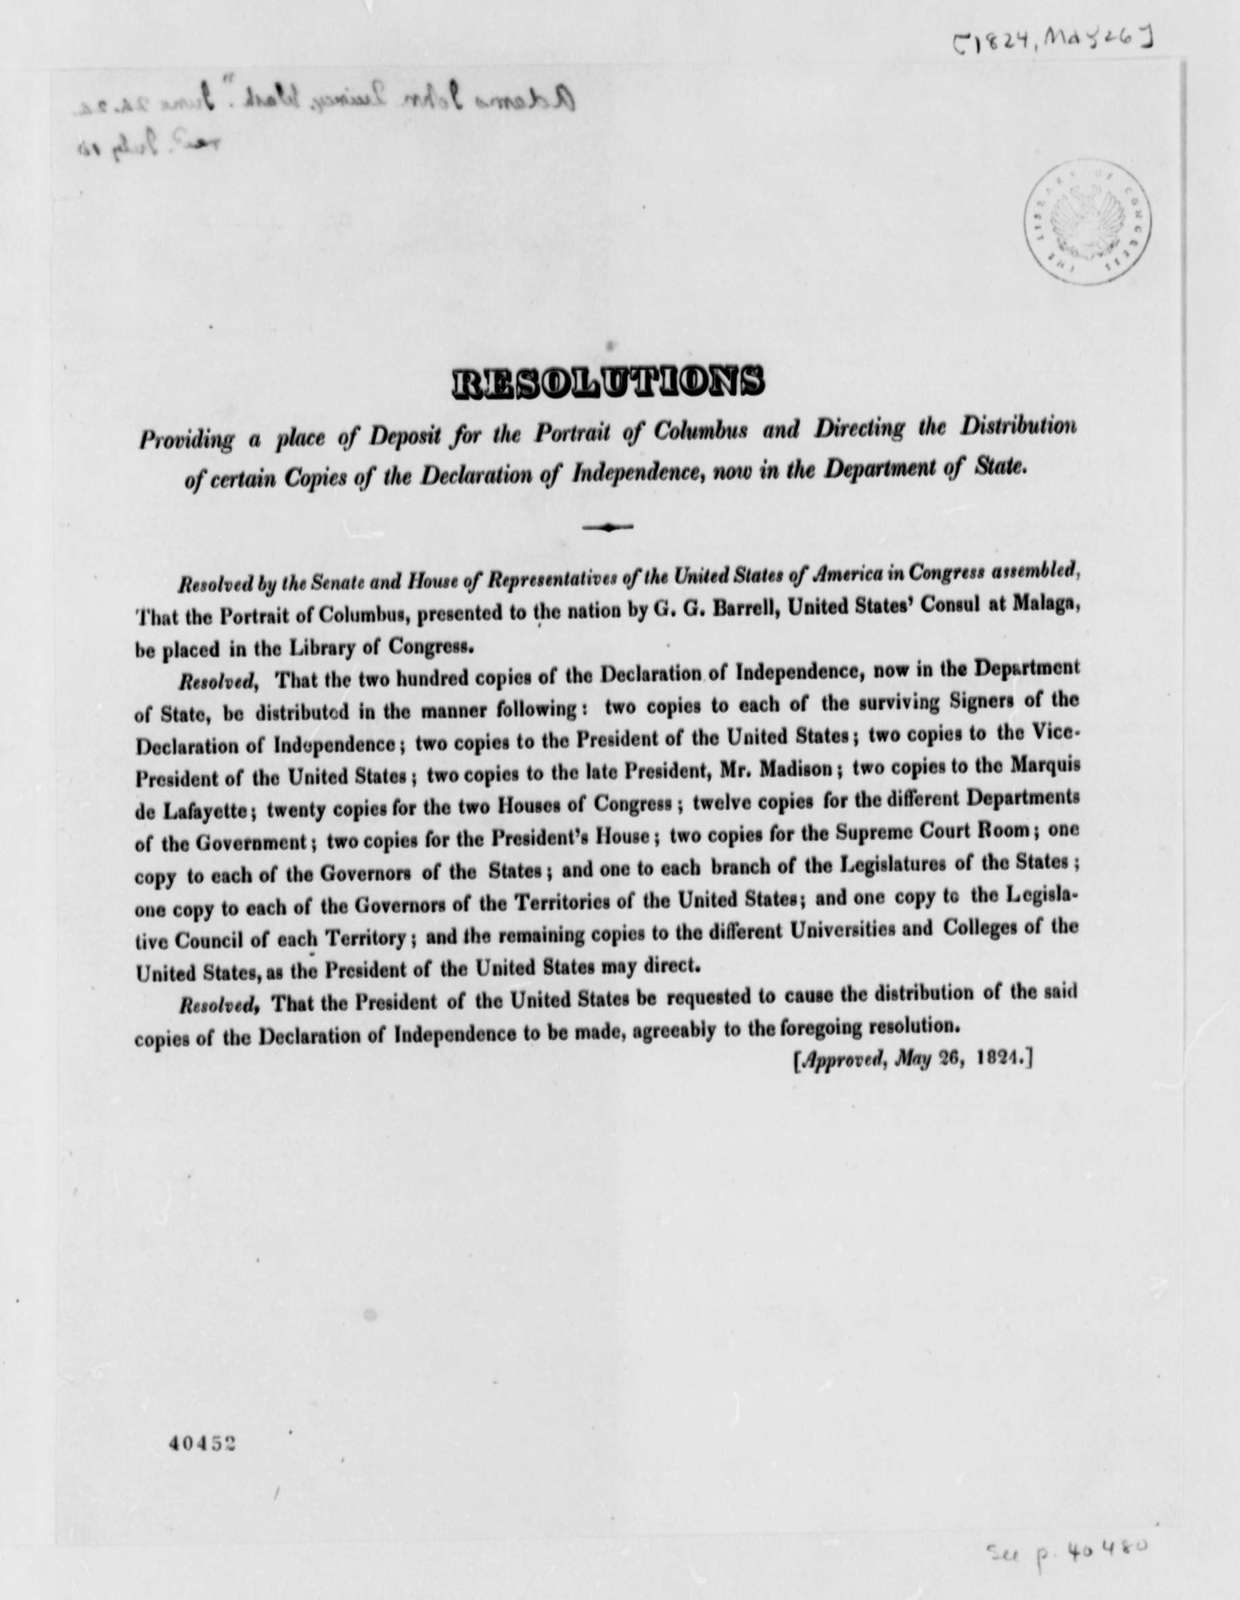 Congress, June 26, 1824, Printed Resolution for the Portrait of Columbus and Distribution of the Declaration of Independence